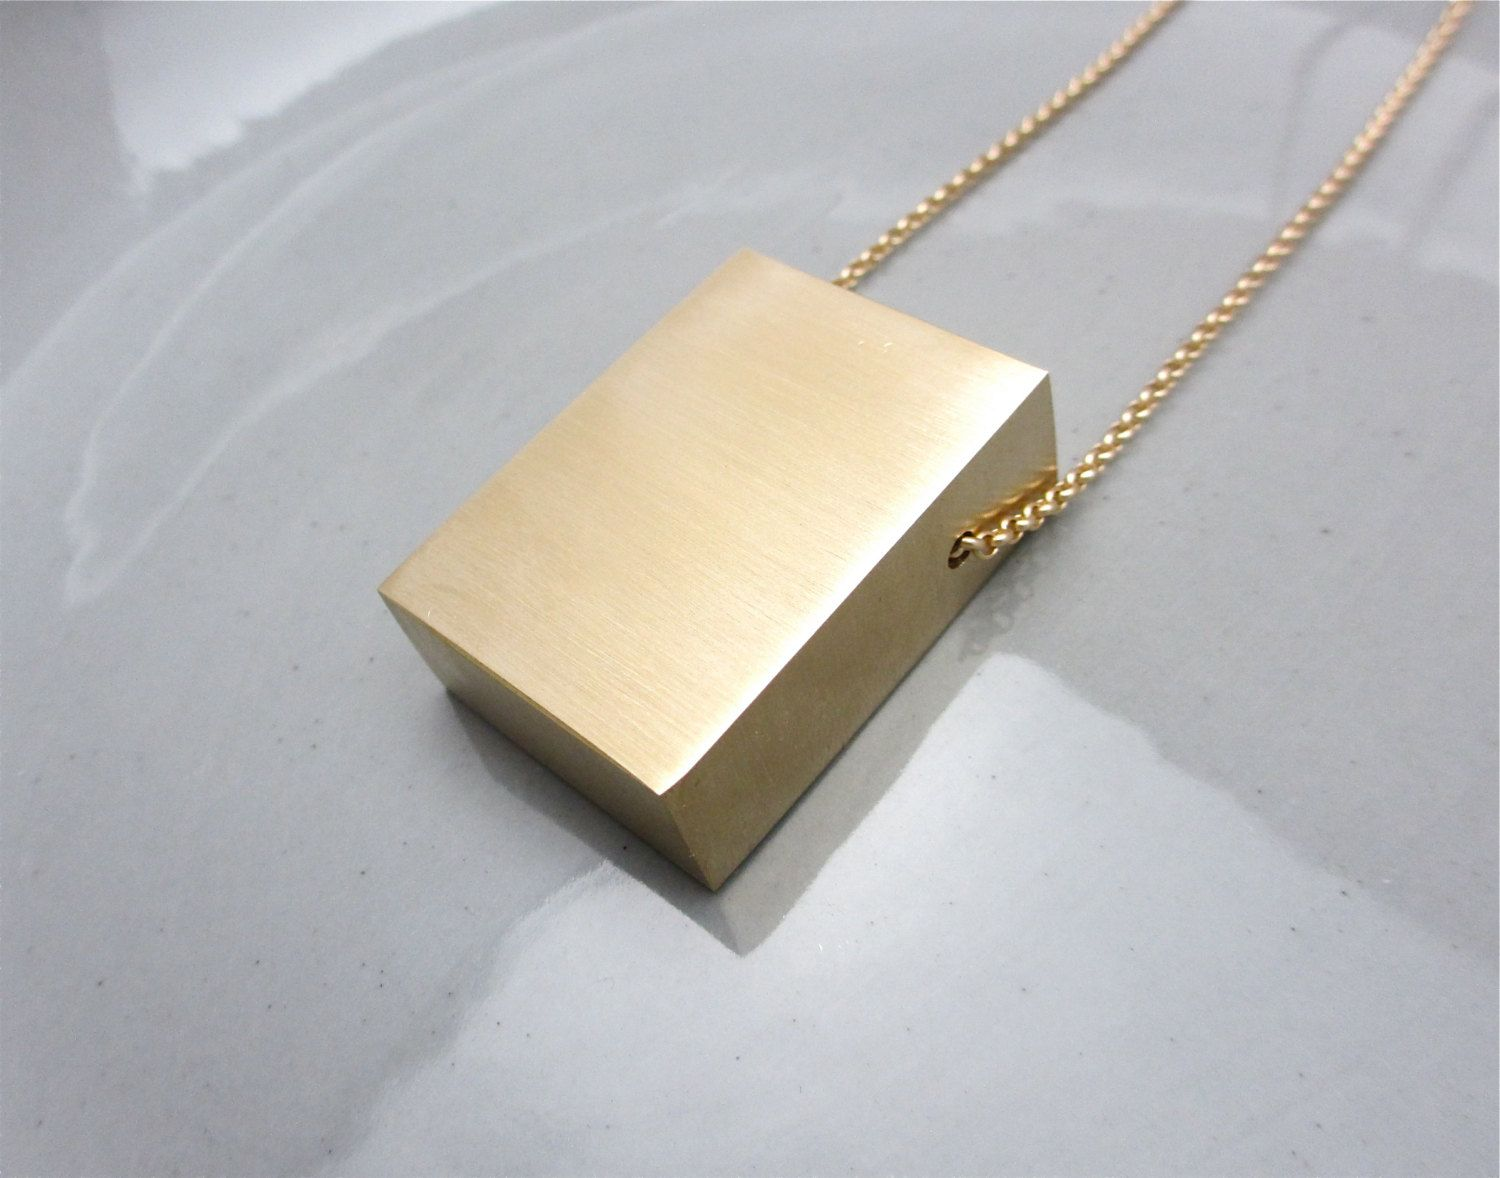 Statement Necklace Minimalist Jewelry Material Purity Series